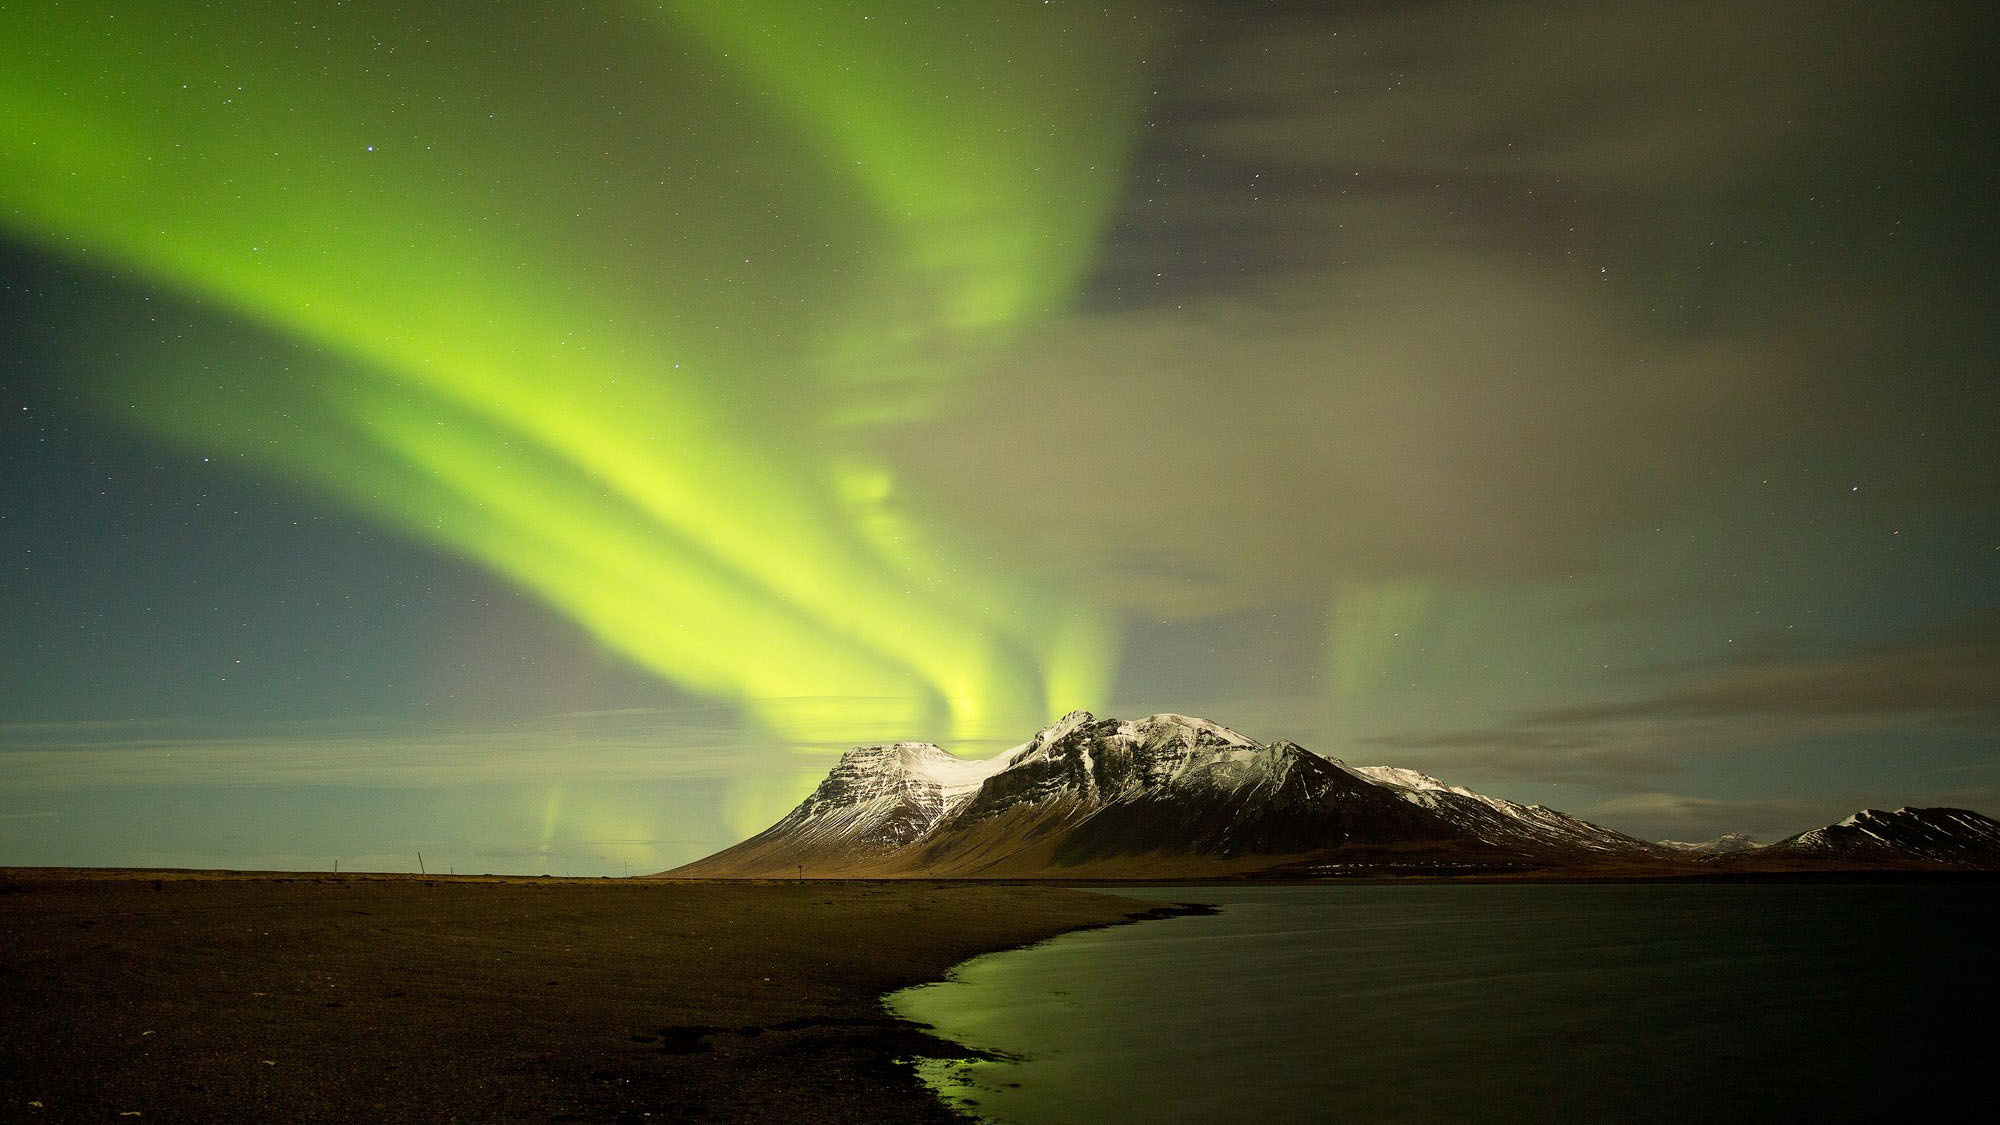 When the magical Northern Lights decide to dance over Iceland's mountainscapes, a photographic opportunity should not be missed.